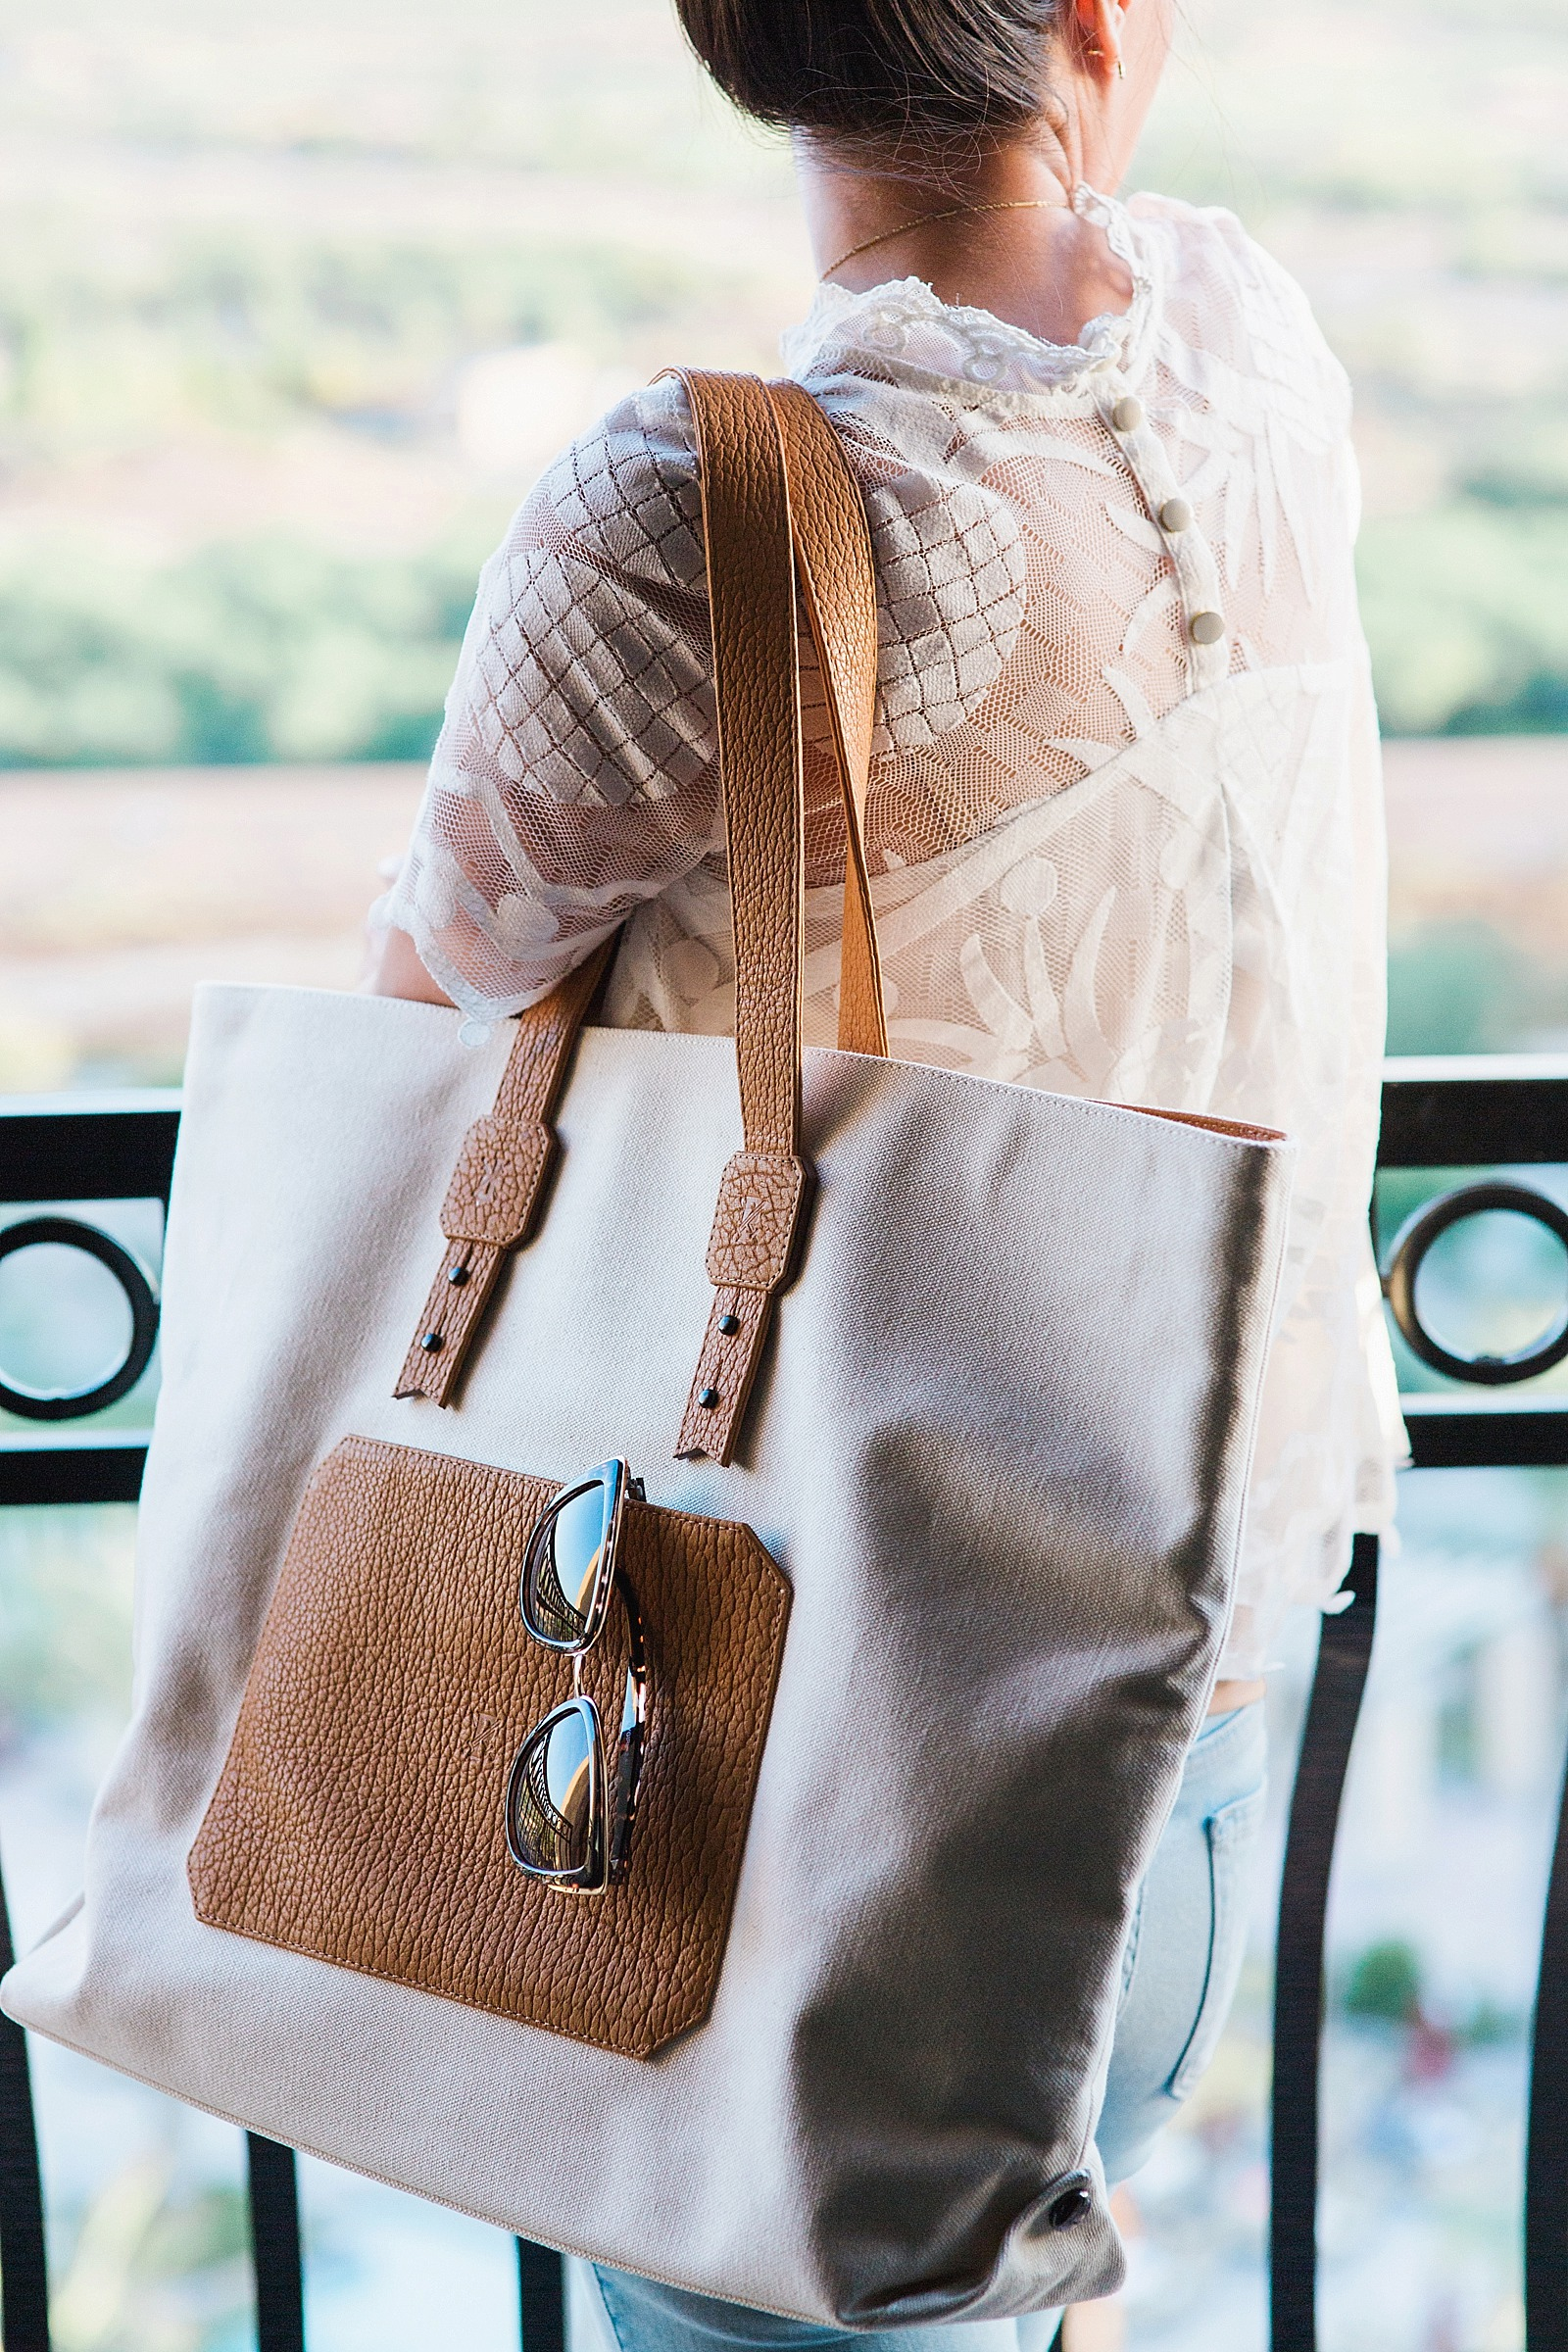 parabellum-buffalo-bison-leather-studio-tote-diana-elizabeth-blog-lifestyle-blogger-style_0034